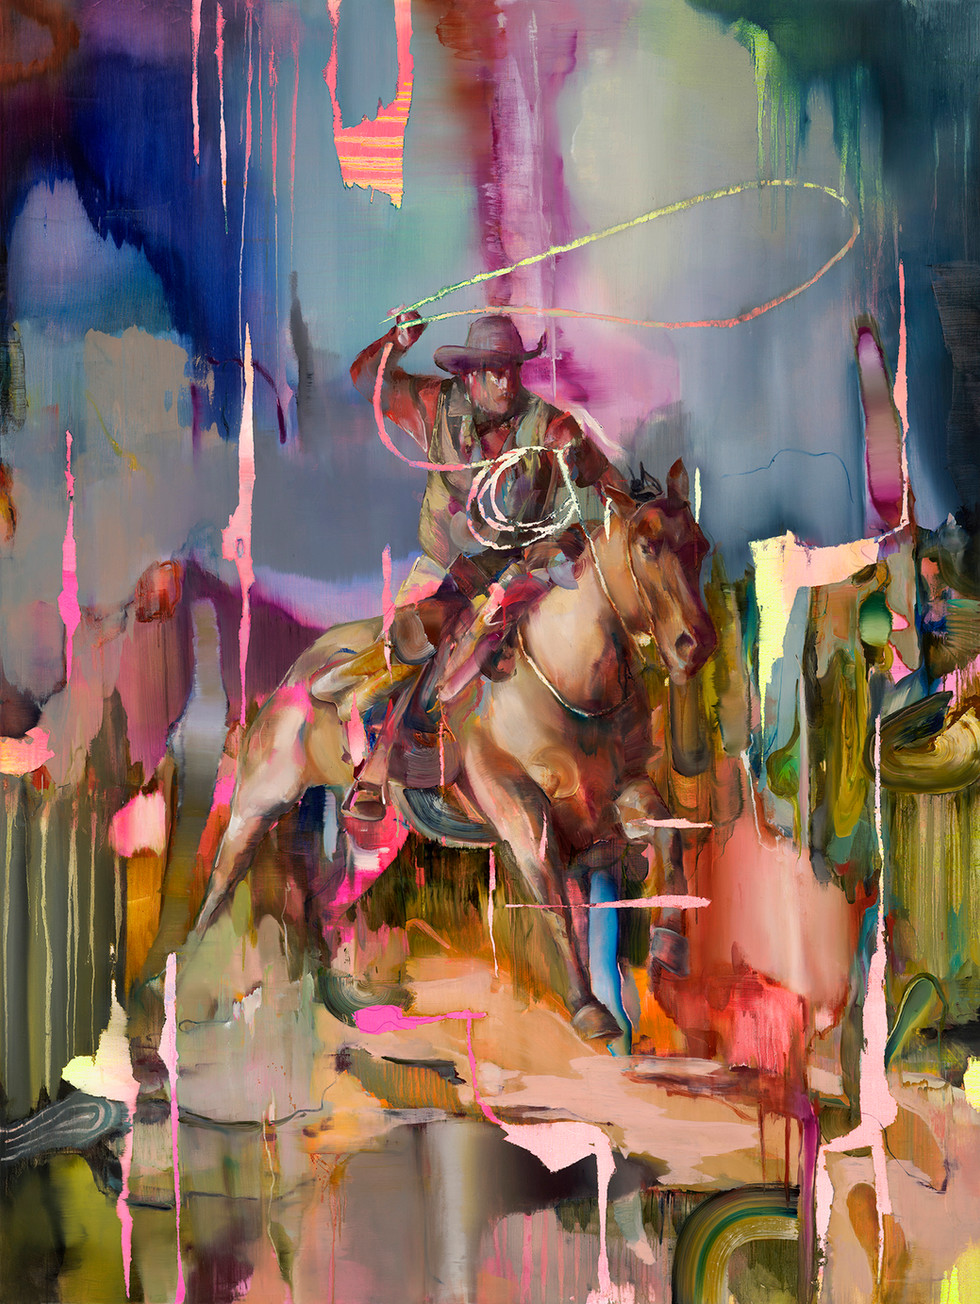 Lassoman I, 240 x 180 cm, oil on linen, 2019